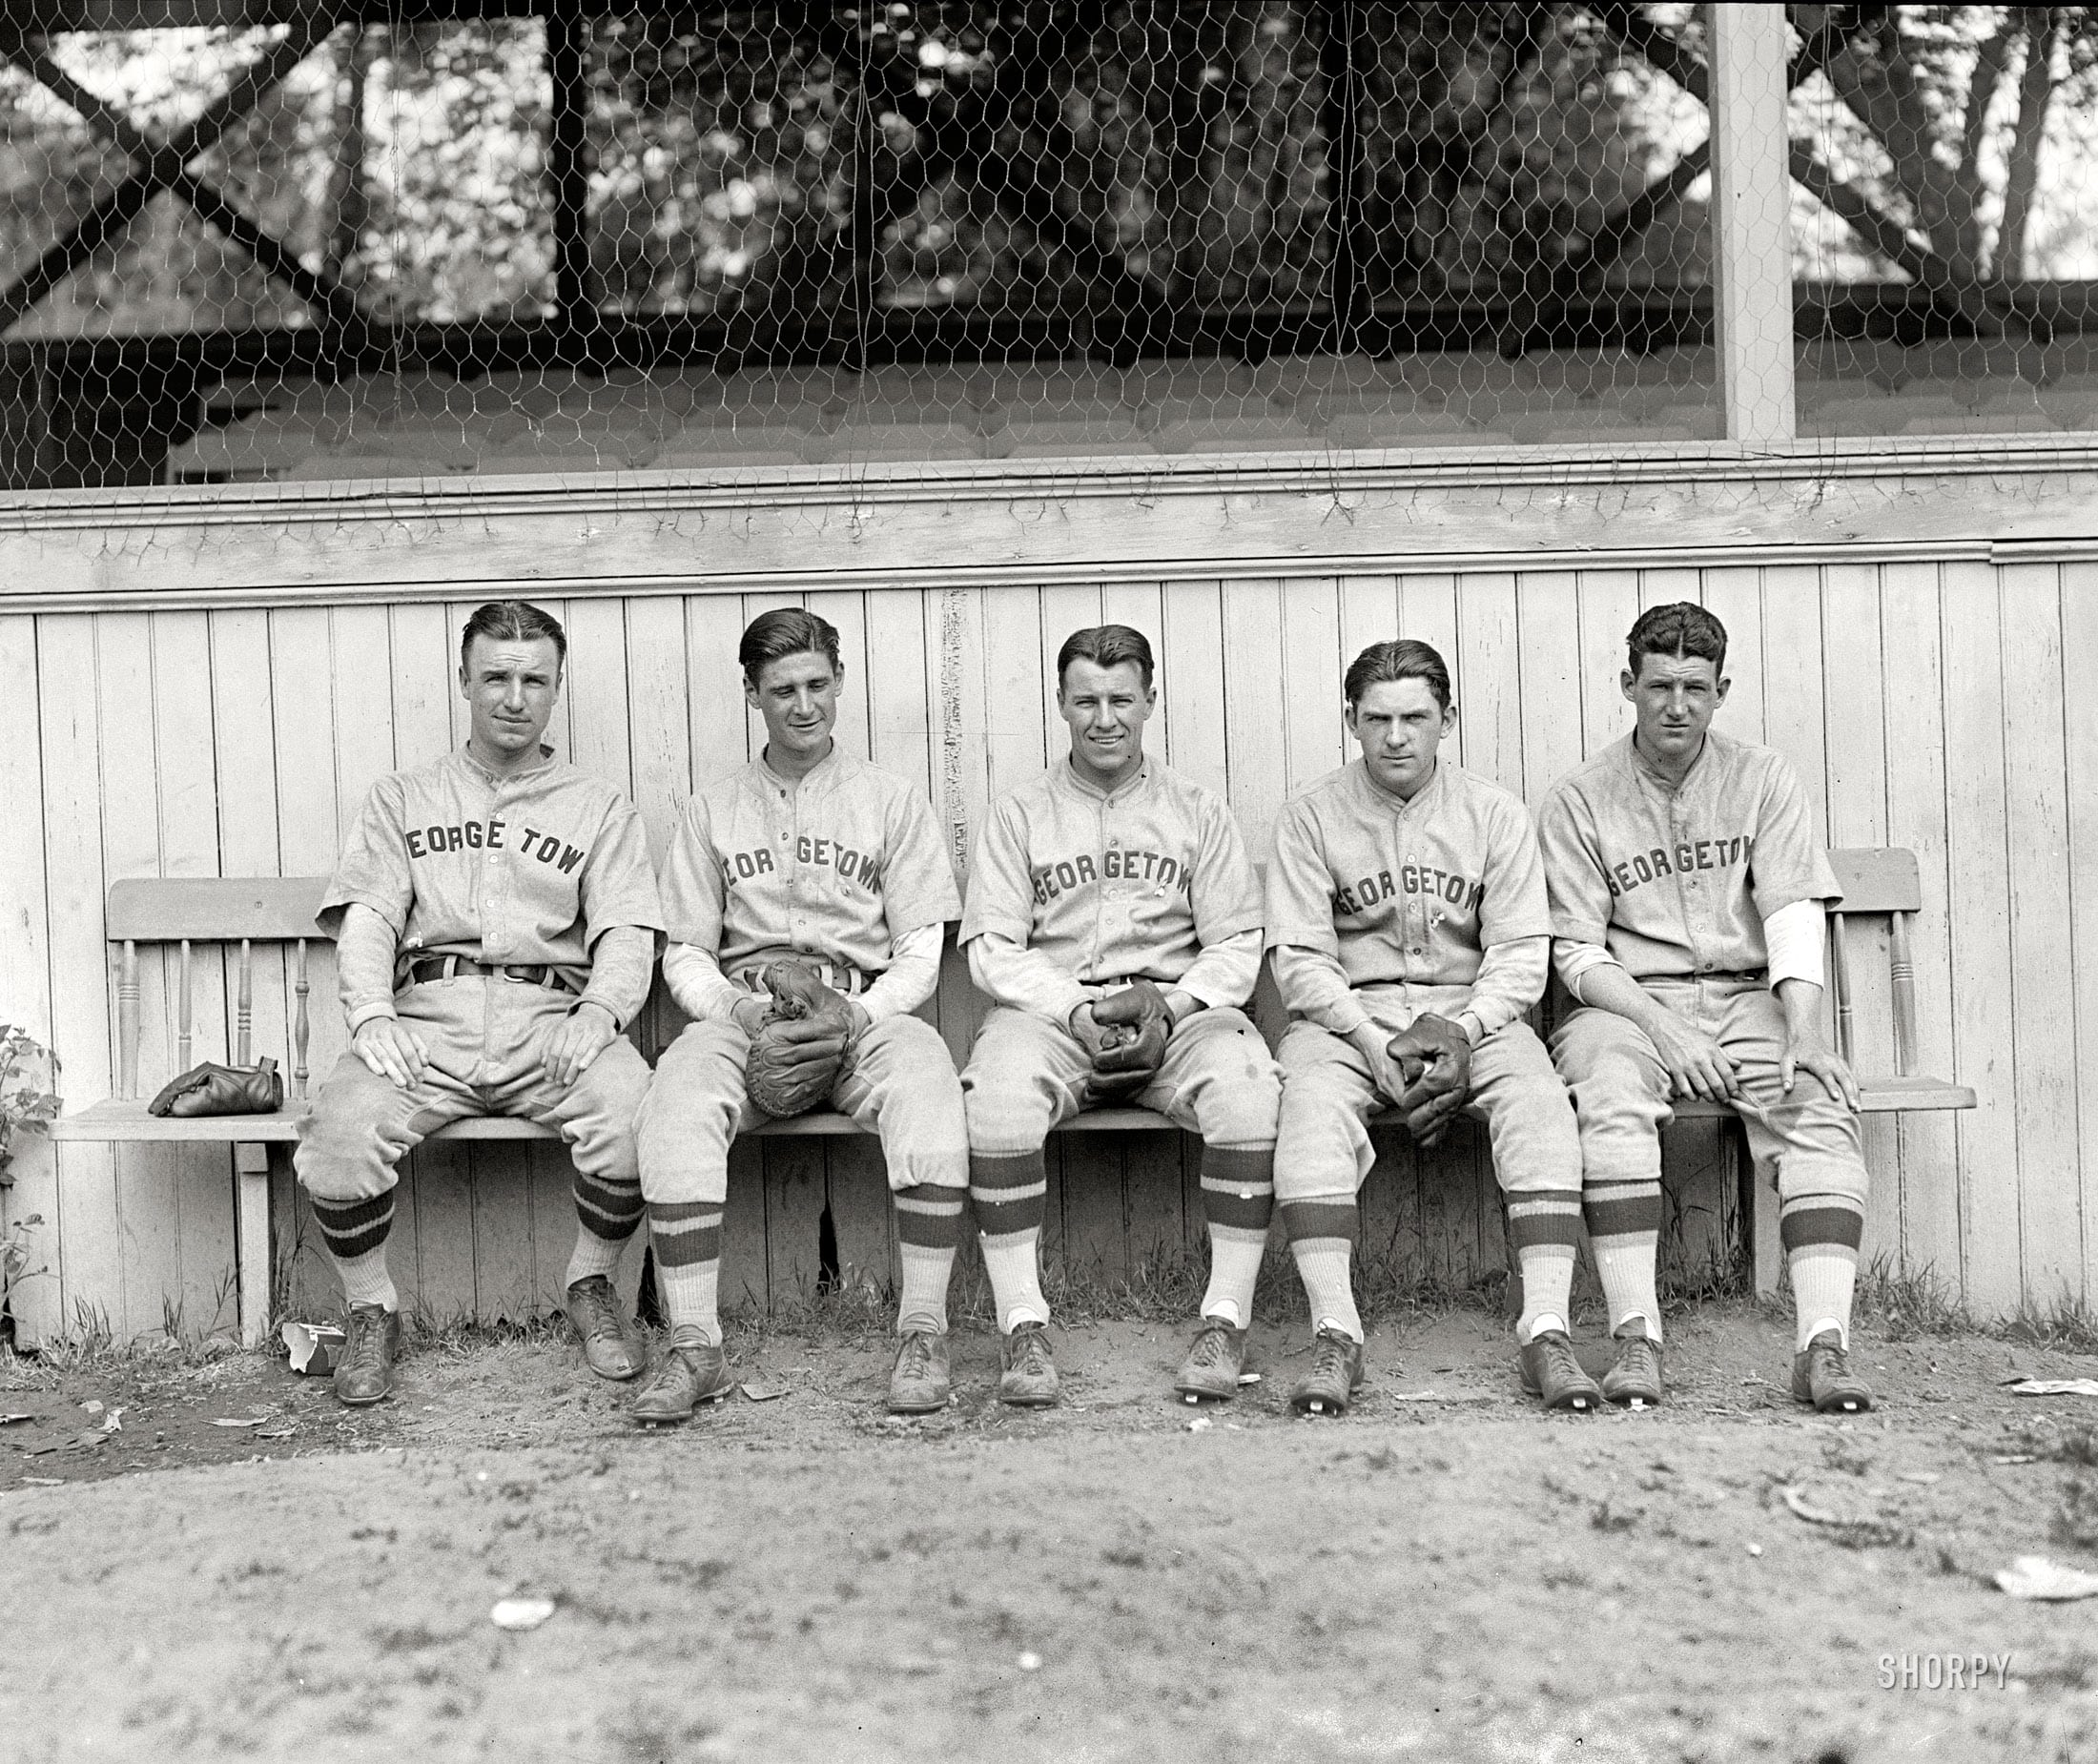 five Georgetown baseball players in 1928